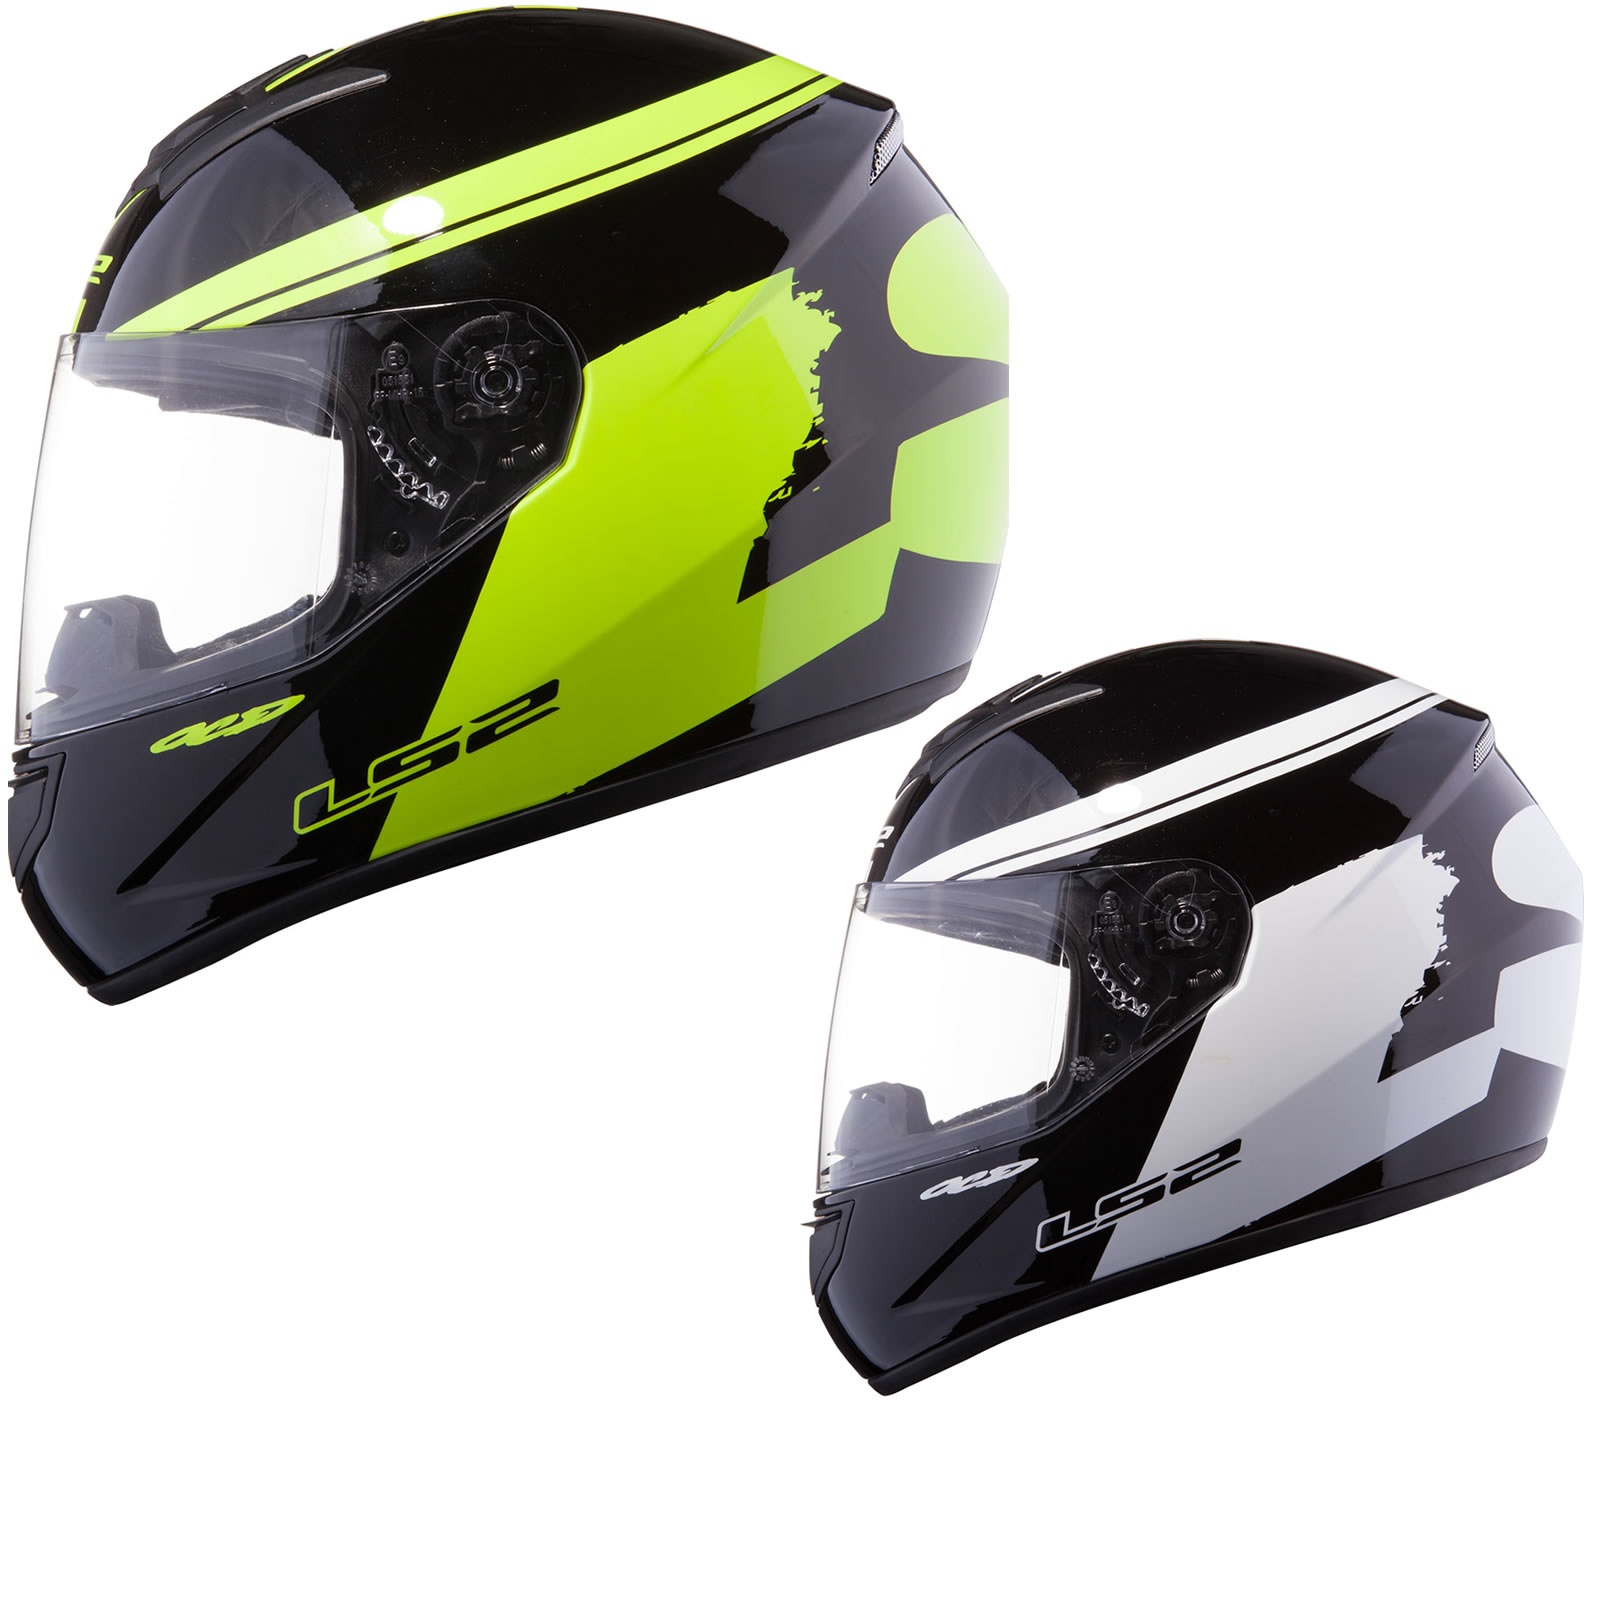 ls2 fluo casque moto scooter int gral course sport piste pro ebay. Black Bedroom Furniture Sets. Home Design Ideas